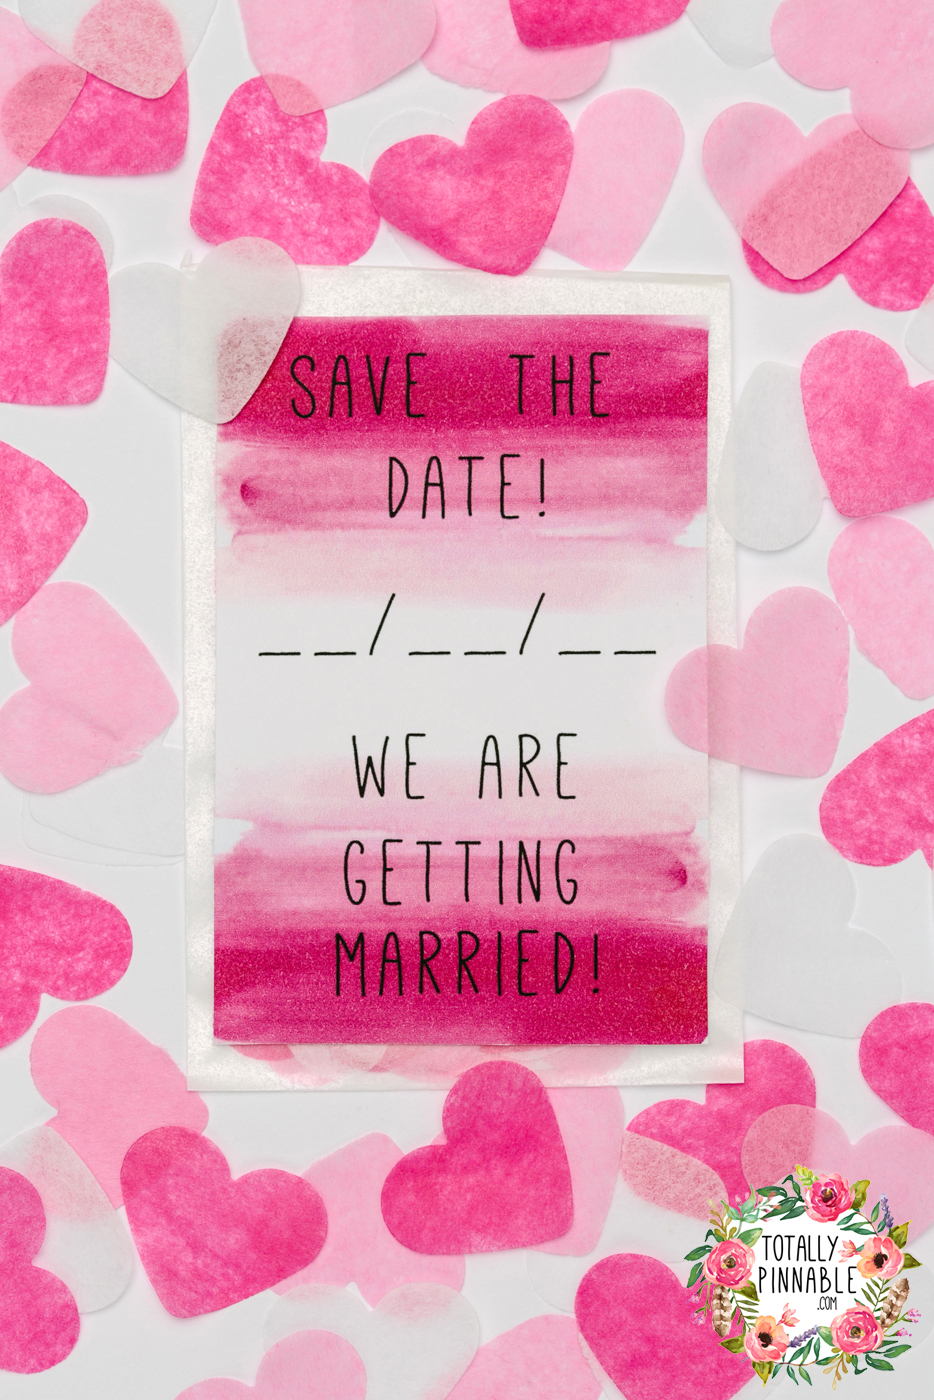 'save the date' confetti filled envelope by totallypinnable.com